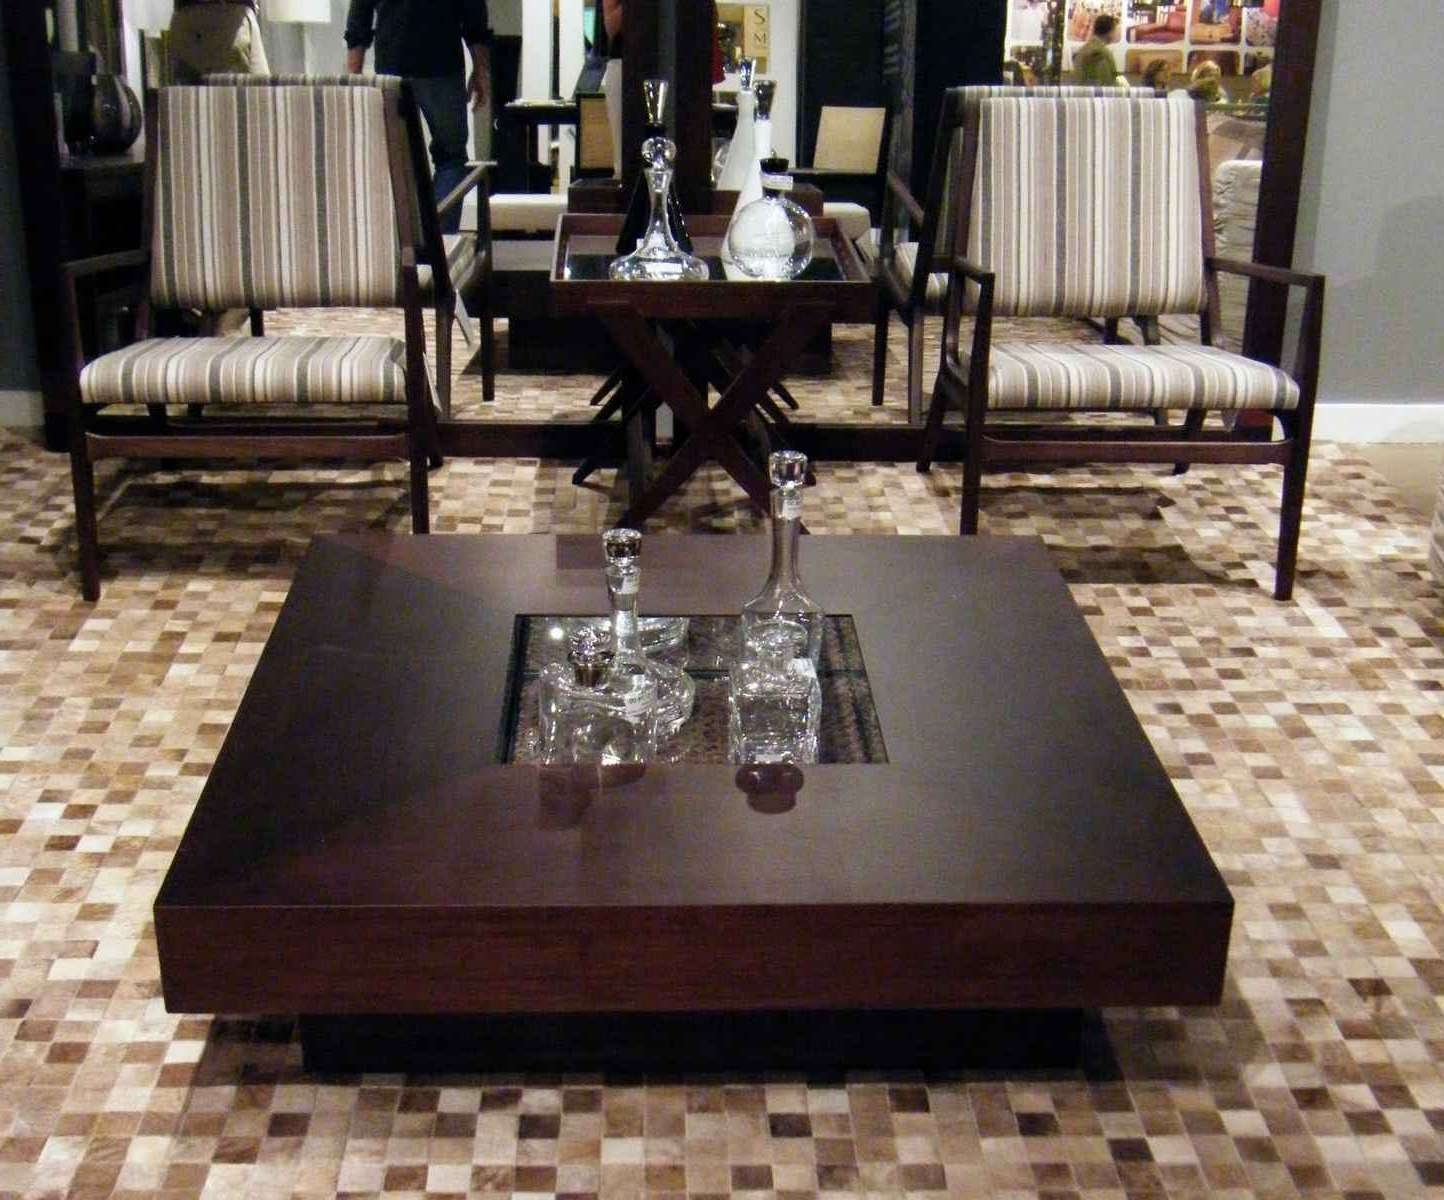 48 Square Coffee Table – Writehookstudio With Regard To Most Recent Extra Large Low Coffee Tables (View 19 of 20)